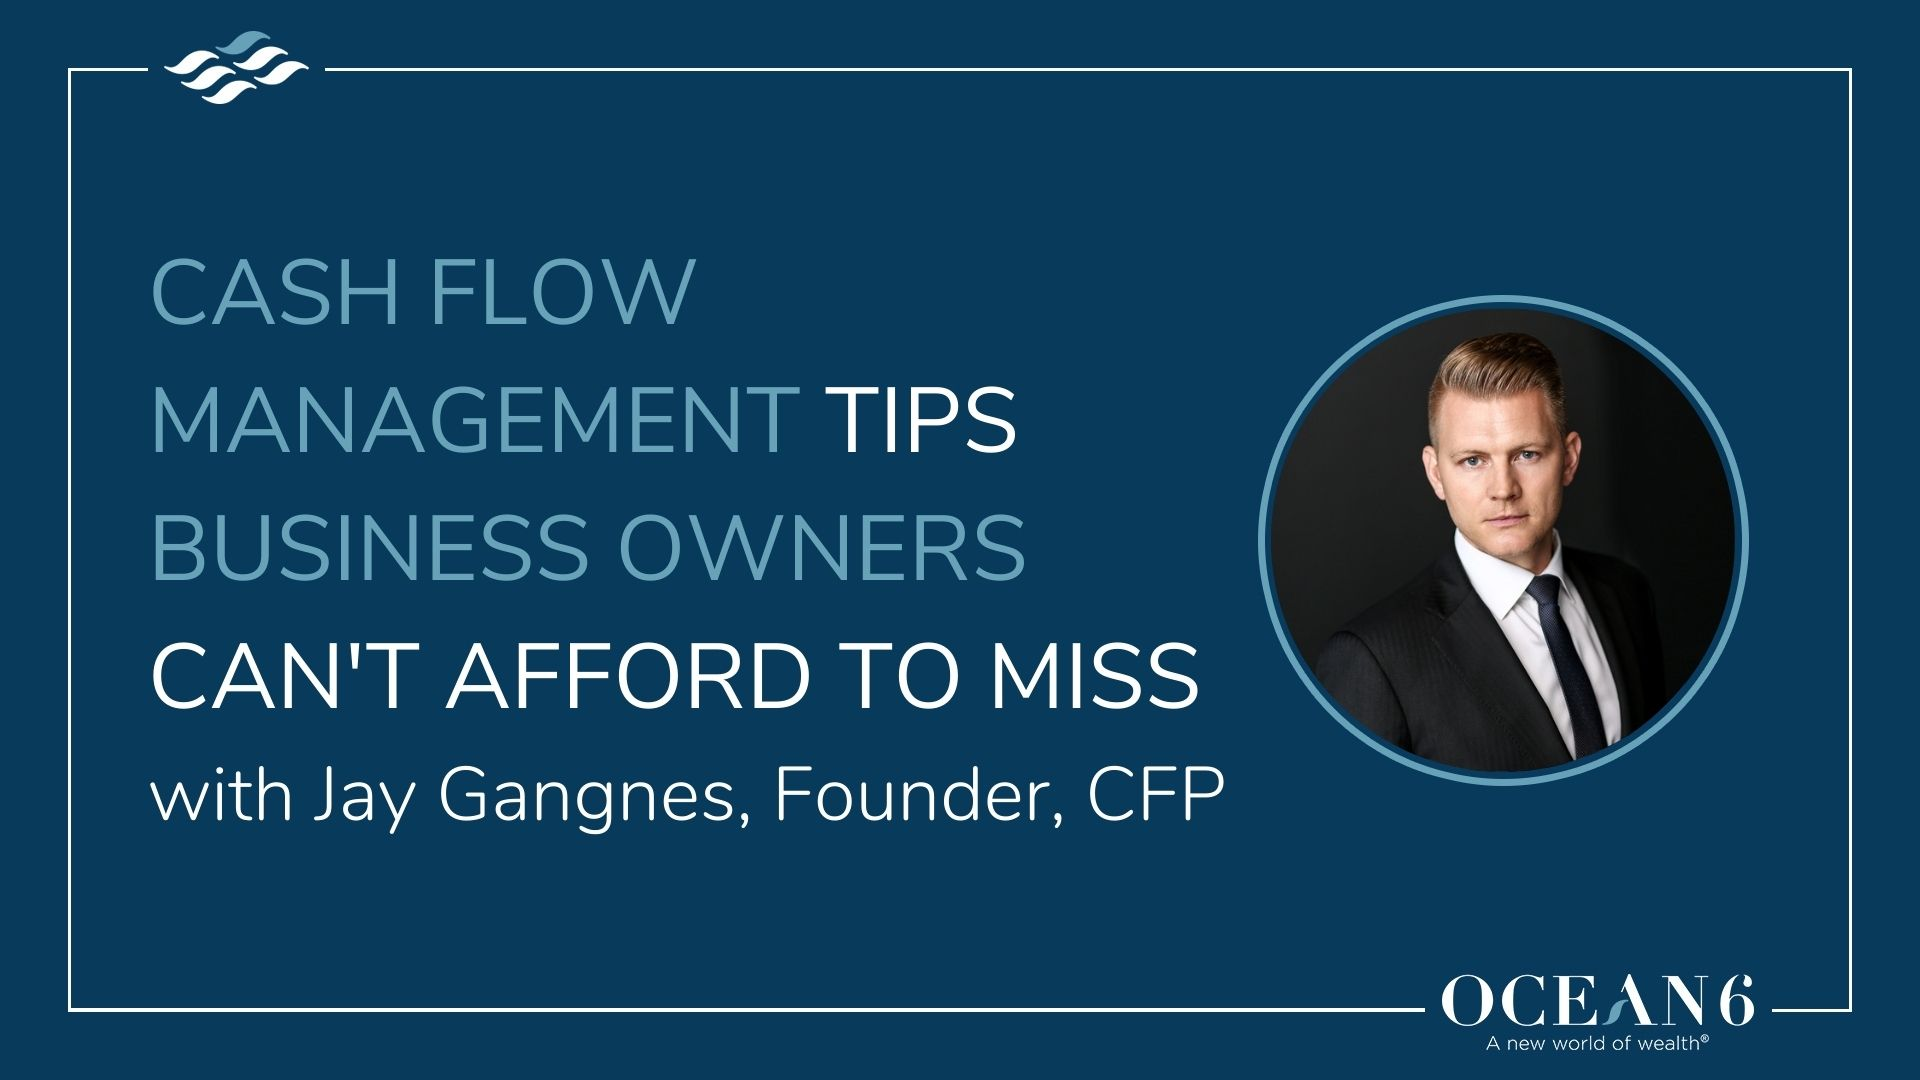 Cash Flow Management Tips Business Owners Can't Afford to Miss